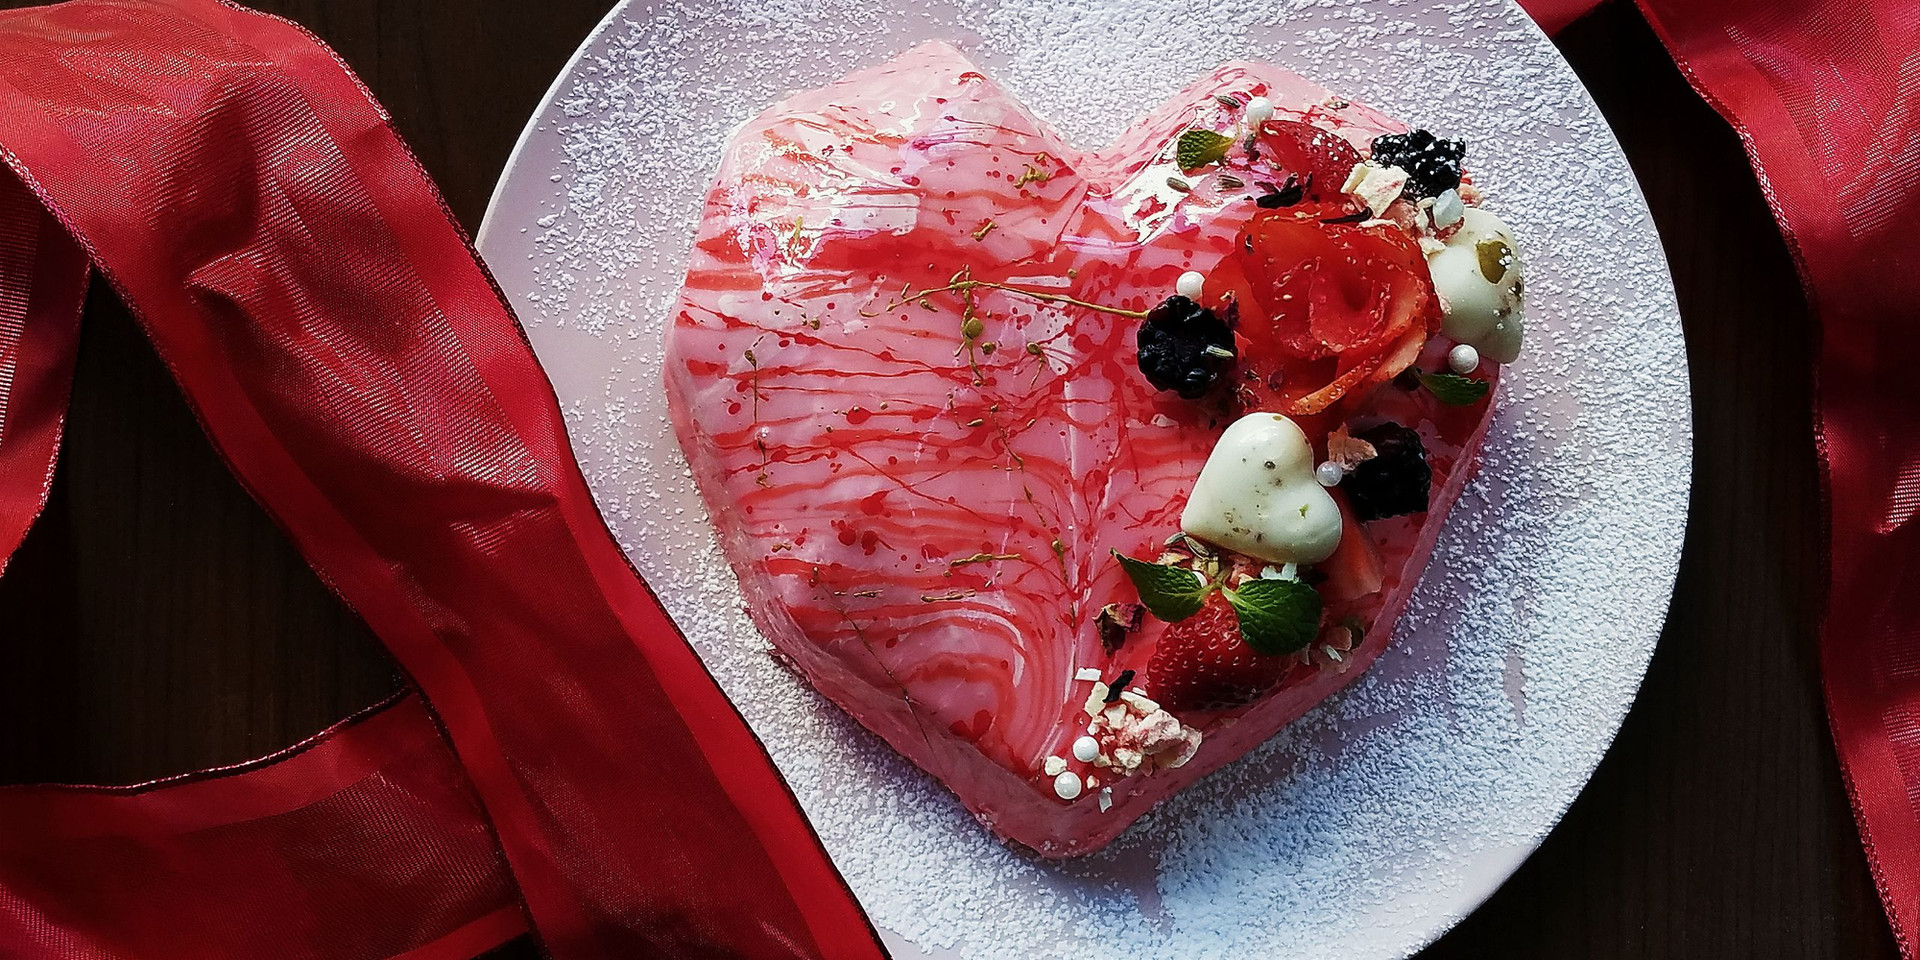 The Romantic Heart Dessert